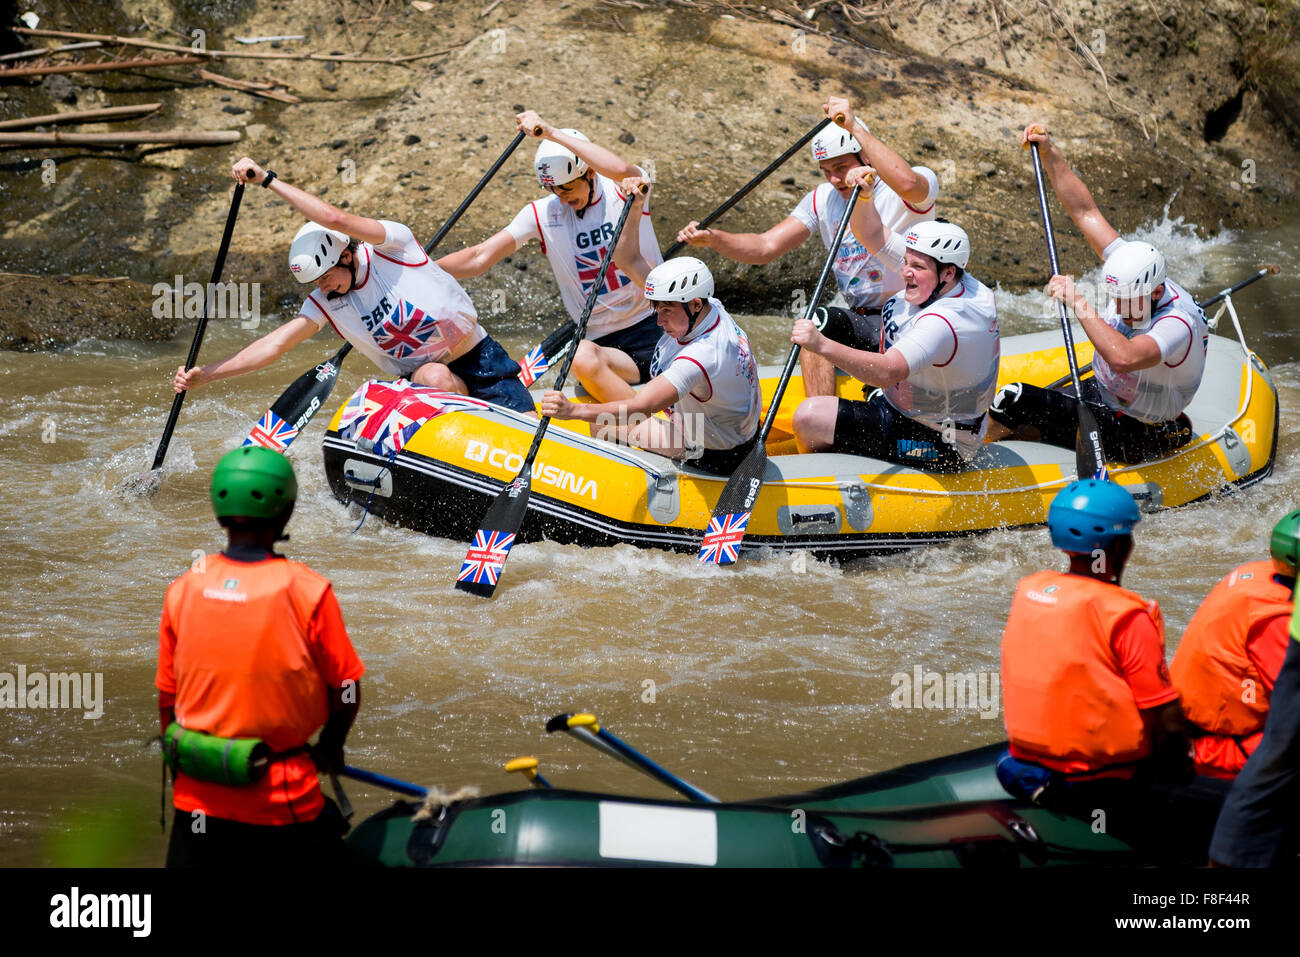 Great Britain U19 men's team during sprint race category on 2015 World Rafting Championships. - Stock Image